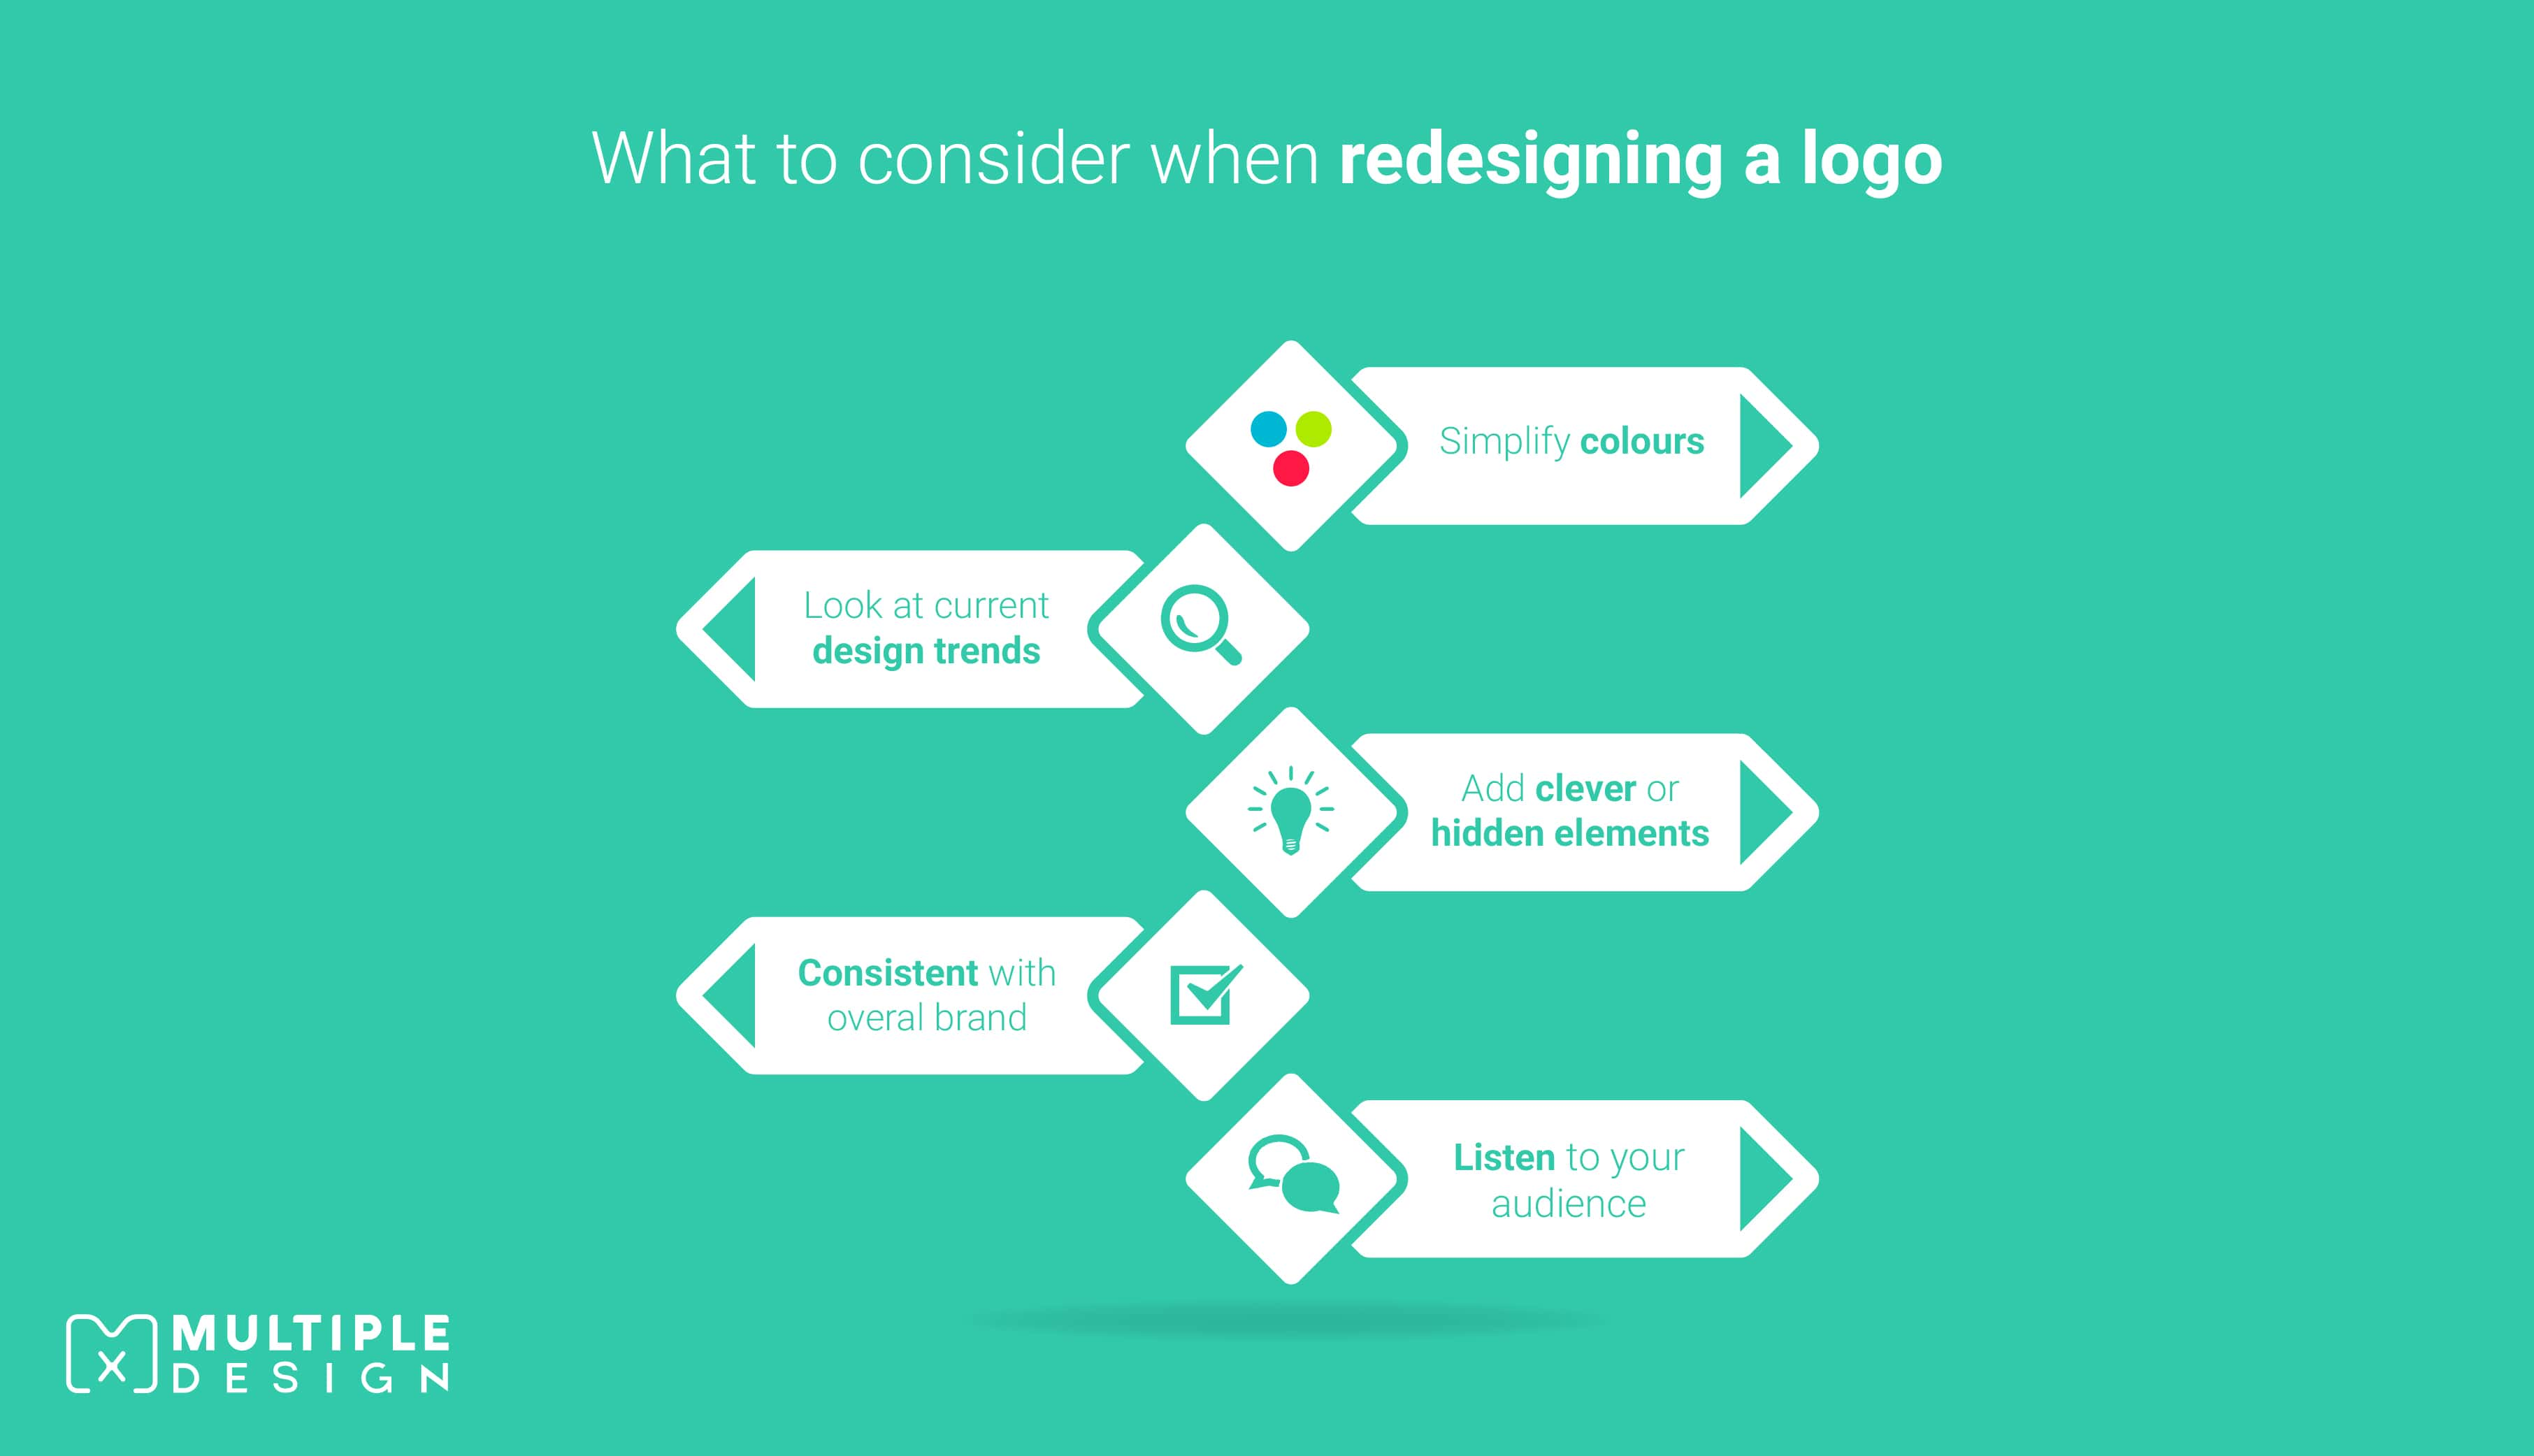 What to consider when redesigning a logo